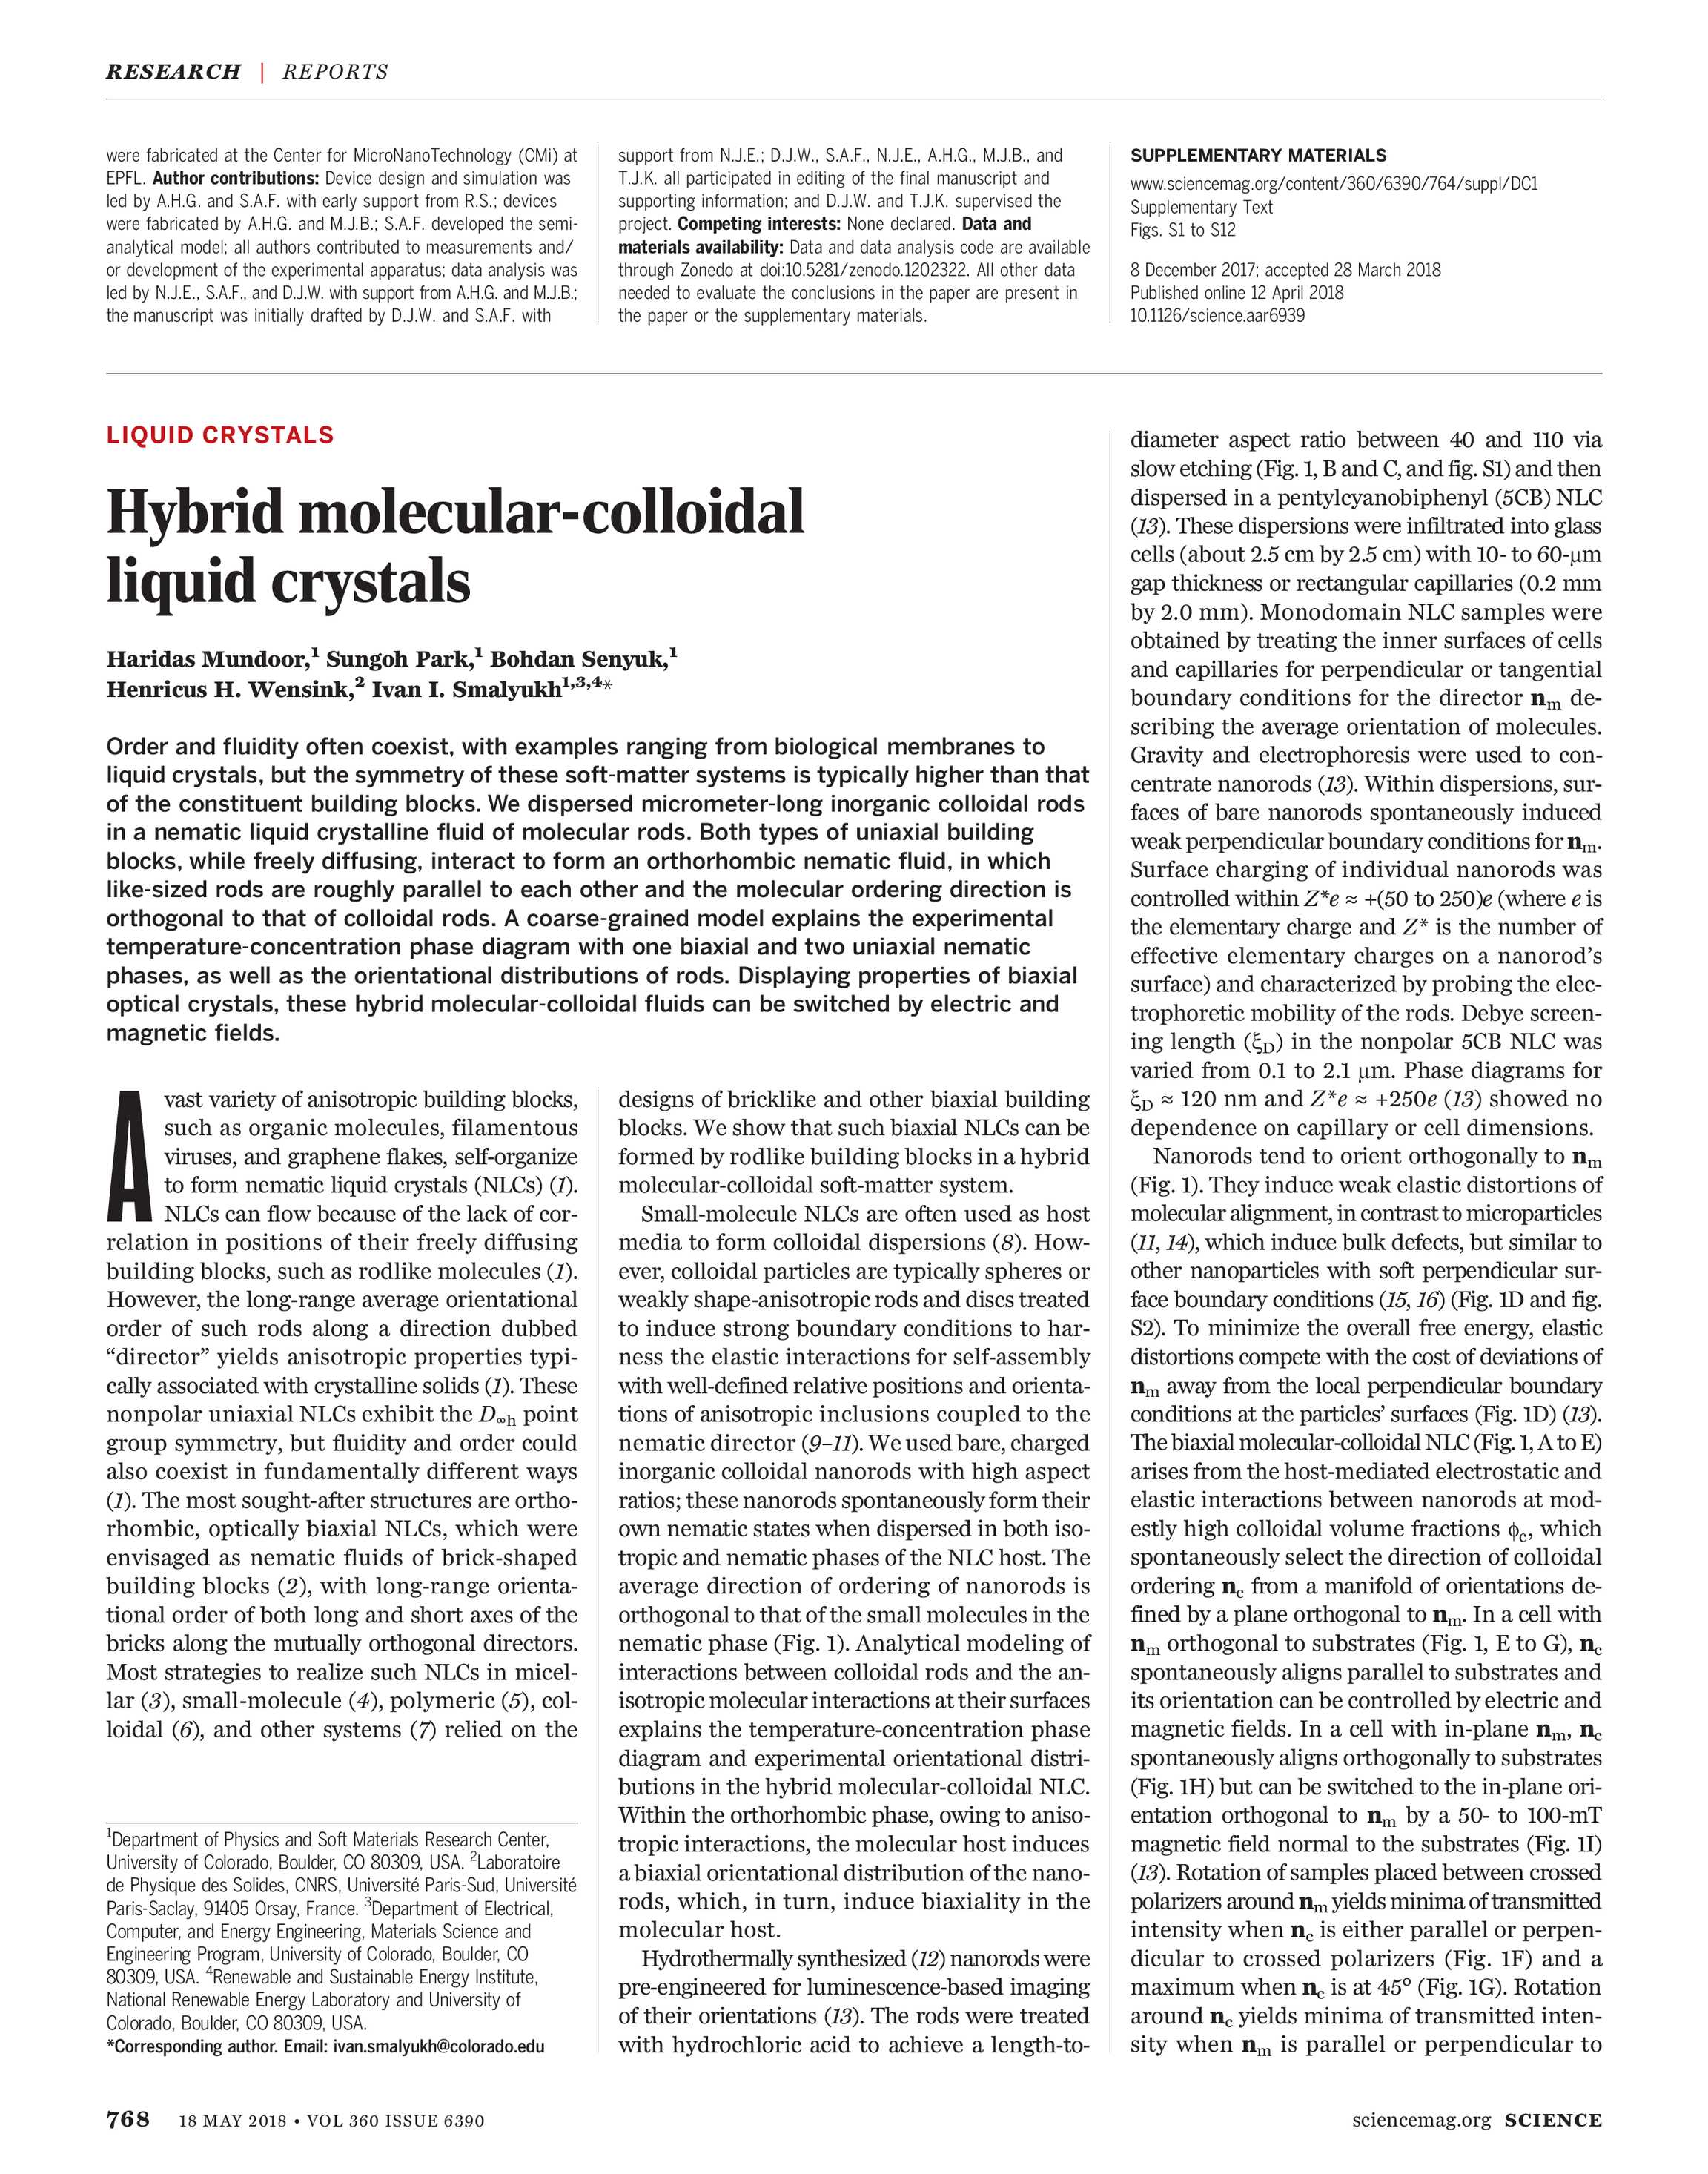 Science Magazine - May 18, 2018 - page 768